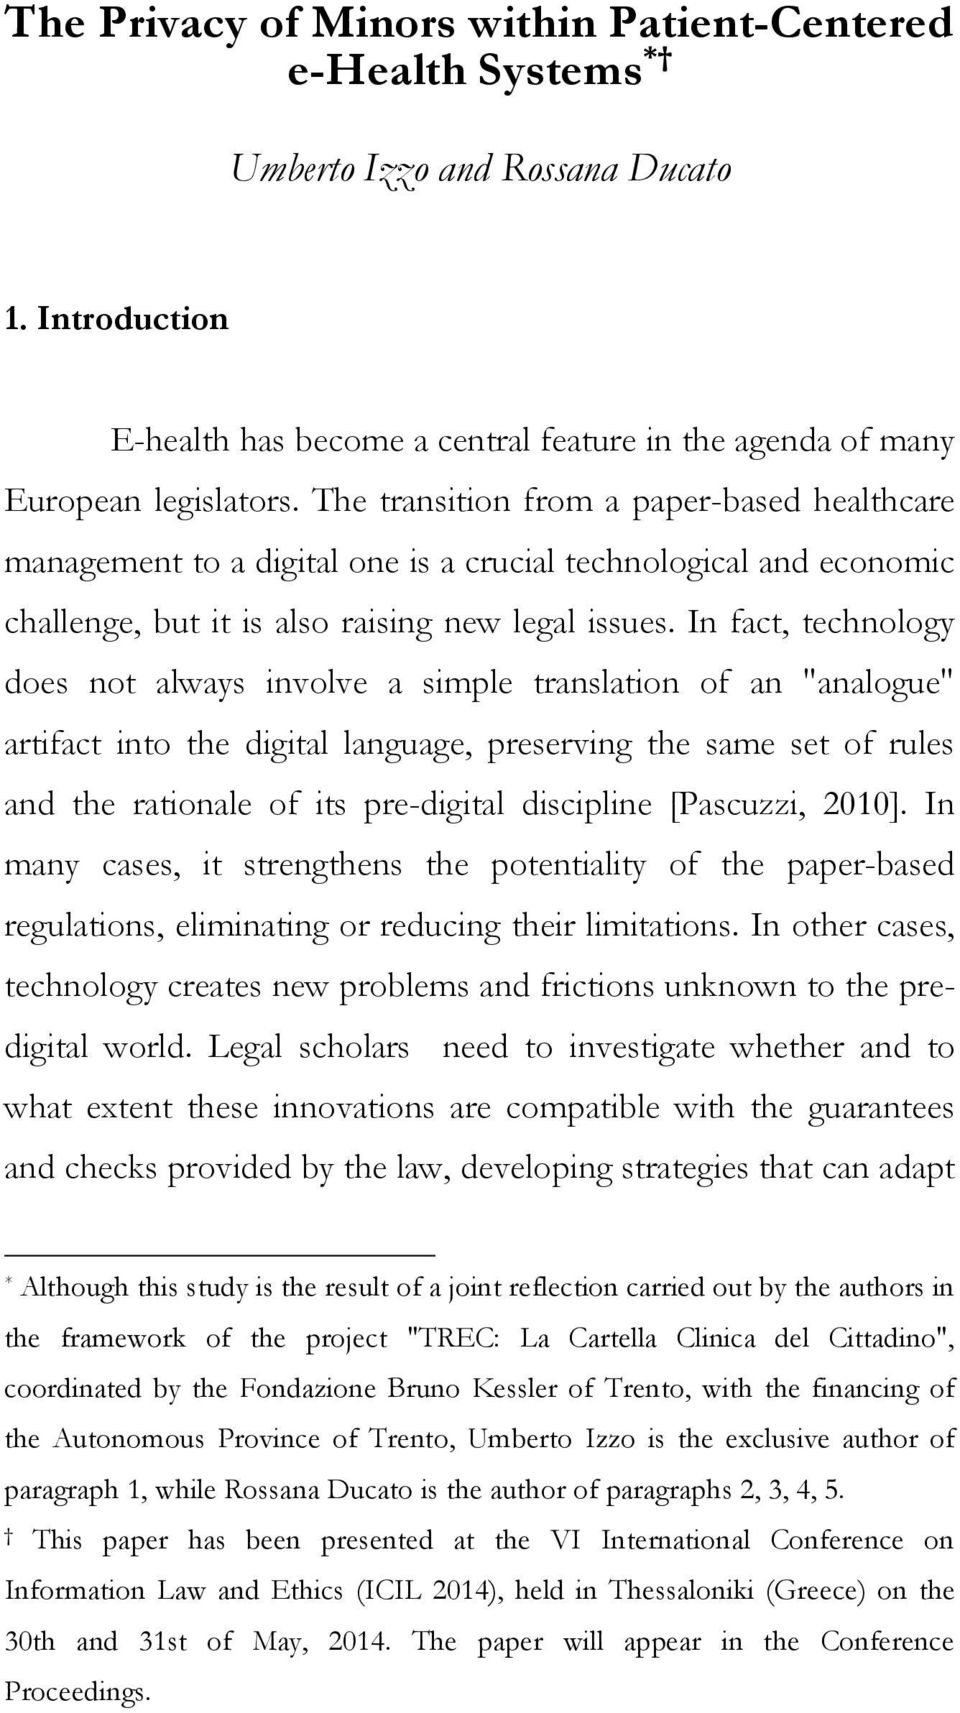 "In fact, technology does not always involve a simple translation of an ""analogue"" artifact into the digital language, preserving the same set of rules and the rationale of its pre-digital discipline"